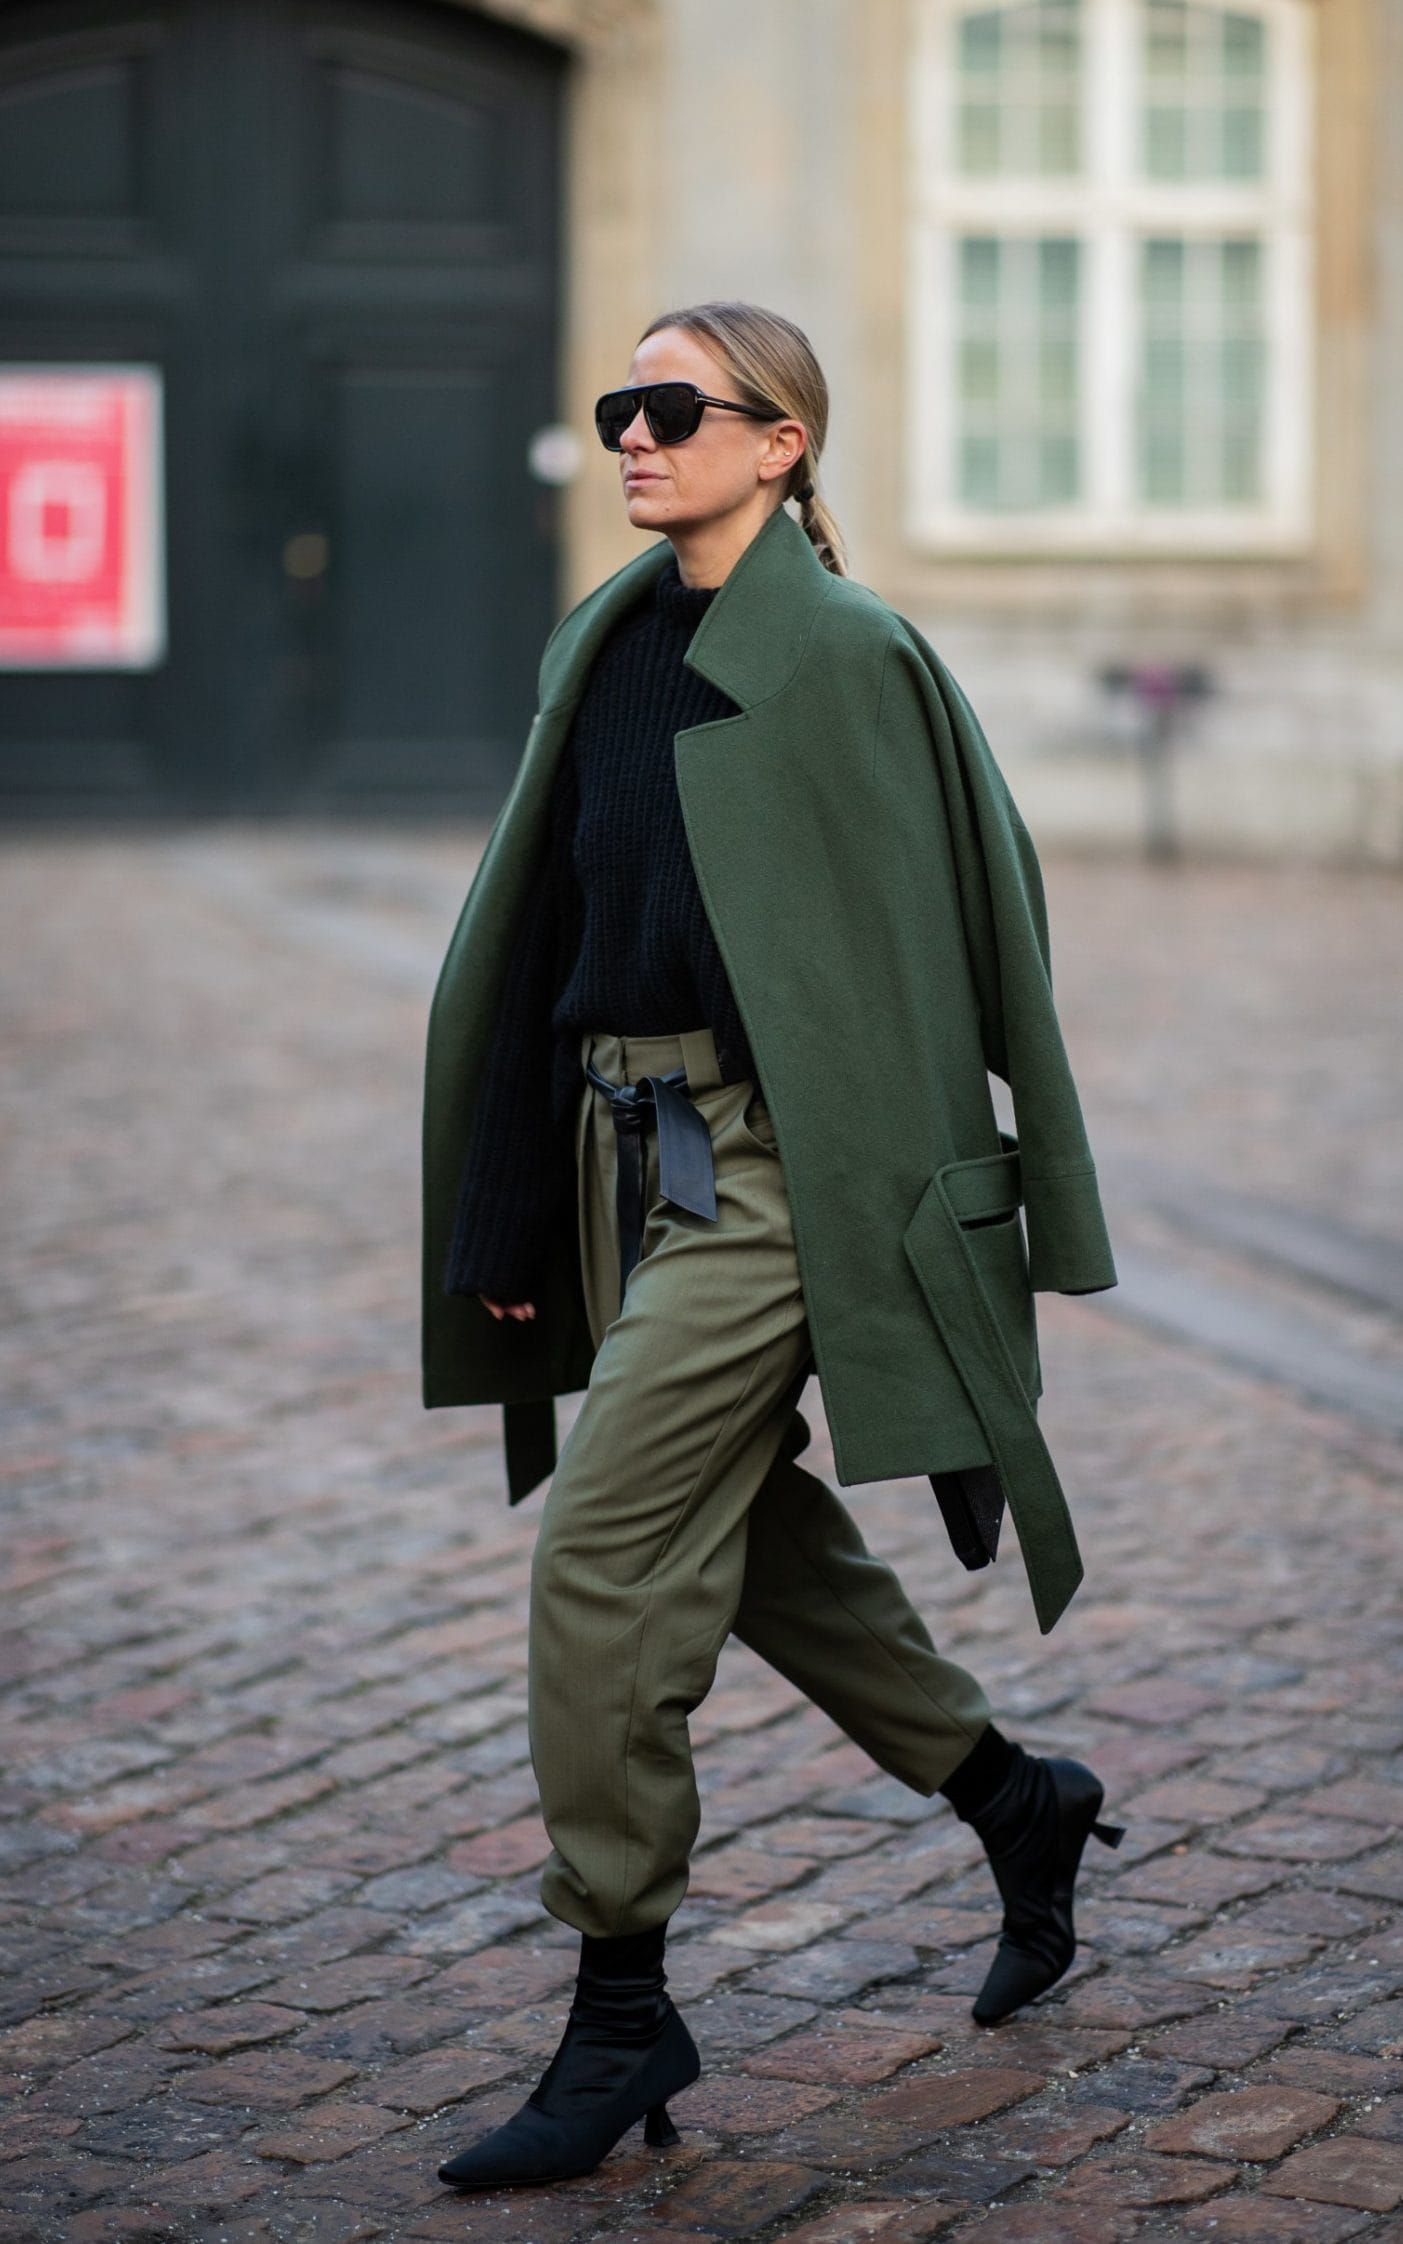 Copenhagen fashion week: How the street style set is nailing dressing for cold weather